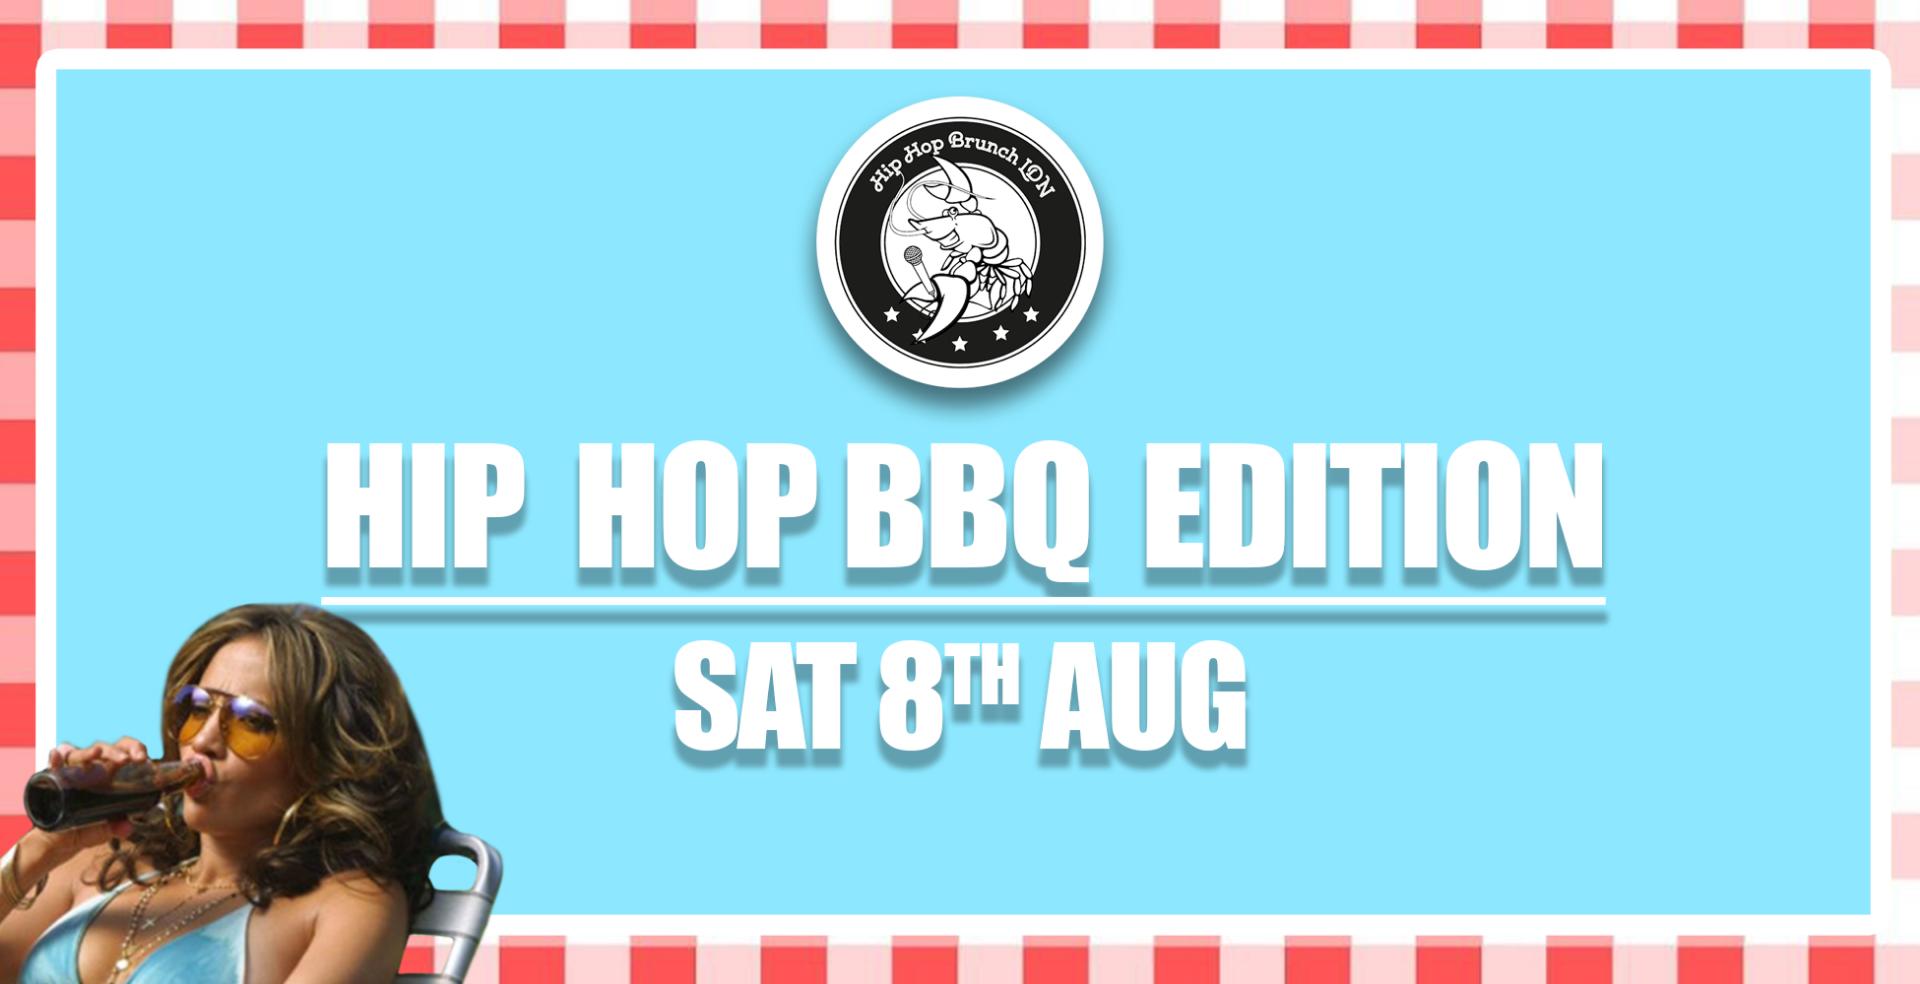 Hip Hop Brunch: BBQ Edition